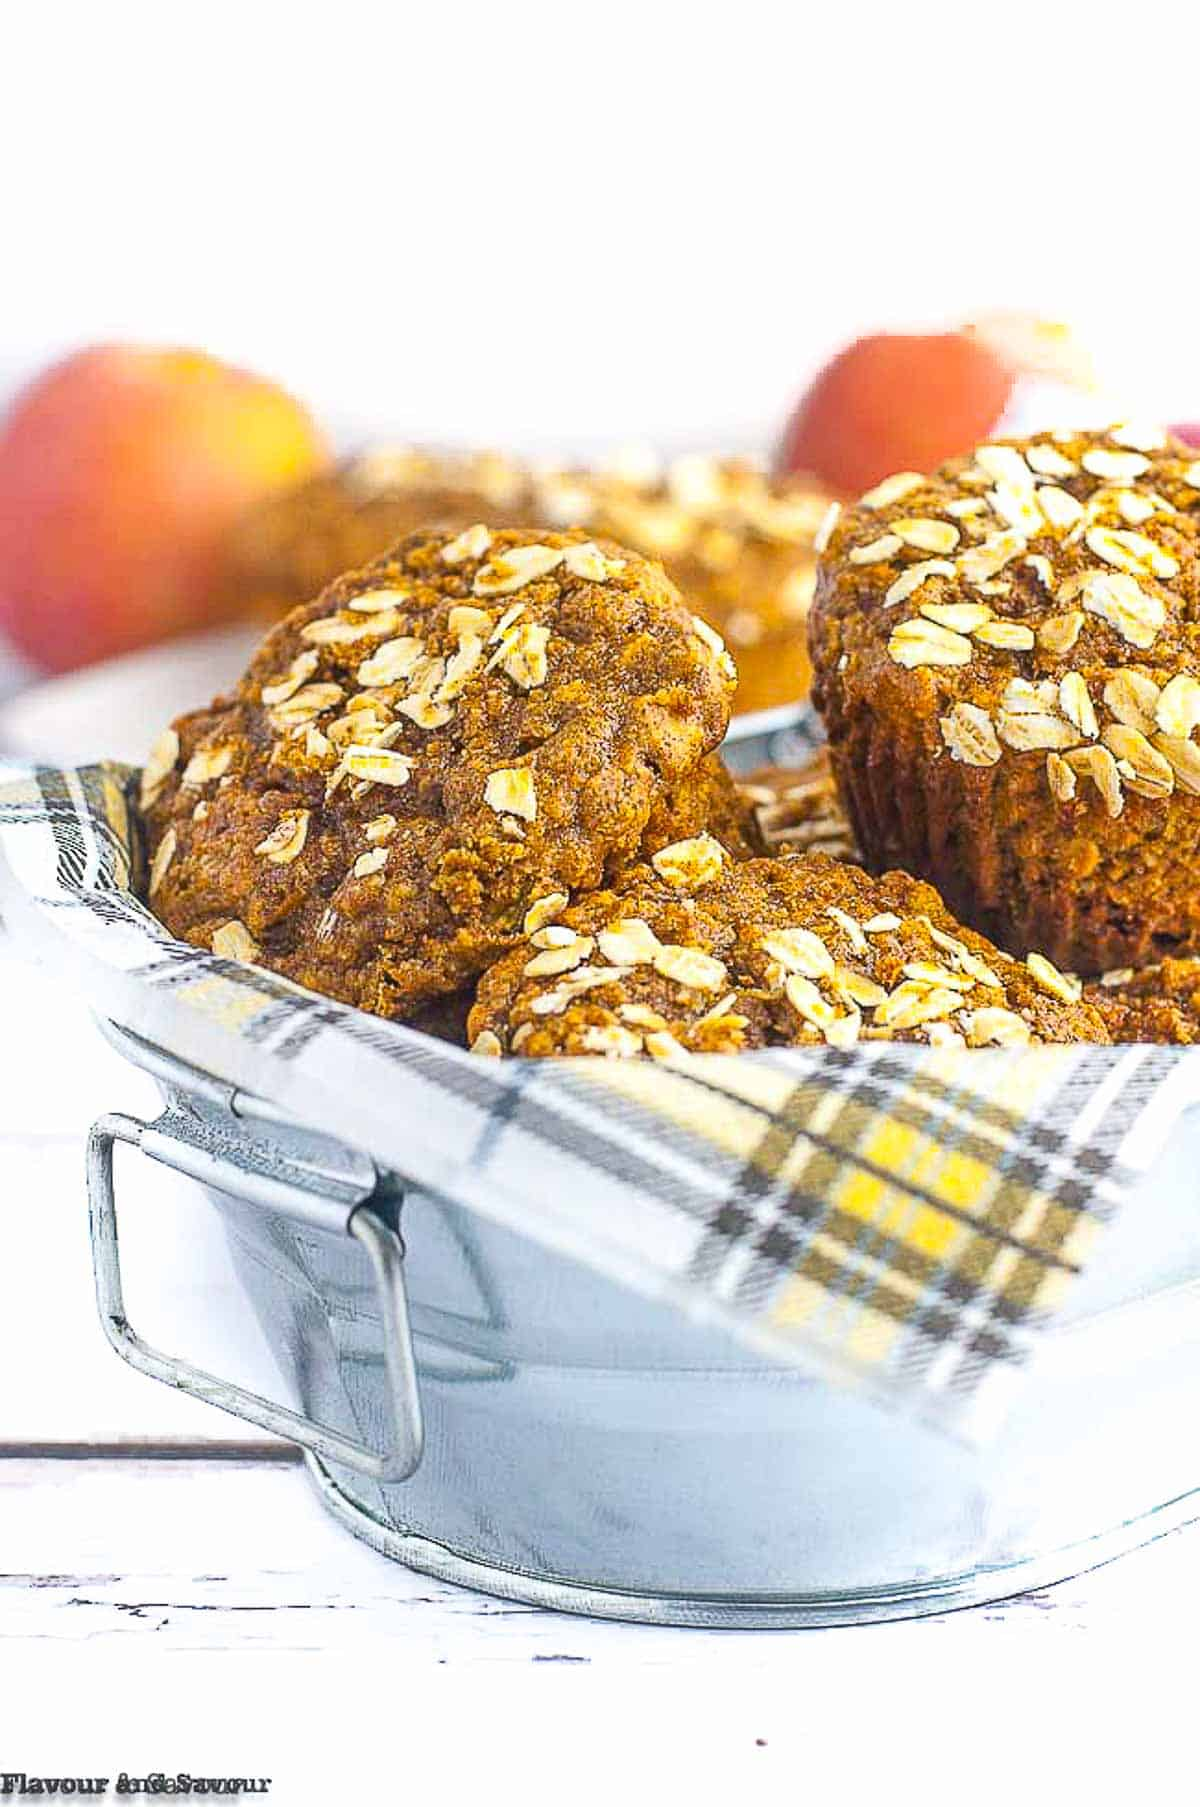 Healthy Apple Oatmeal Breakfast Muffins made with applesauce, rolled oats, honey and almond butter are gluten-free and dairy-free! They're packed with protein to keep you feeling full all morning! #glutenfree #dairyfree #applesauce #almondbutter #peanutbutter